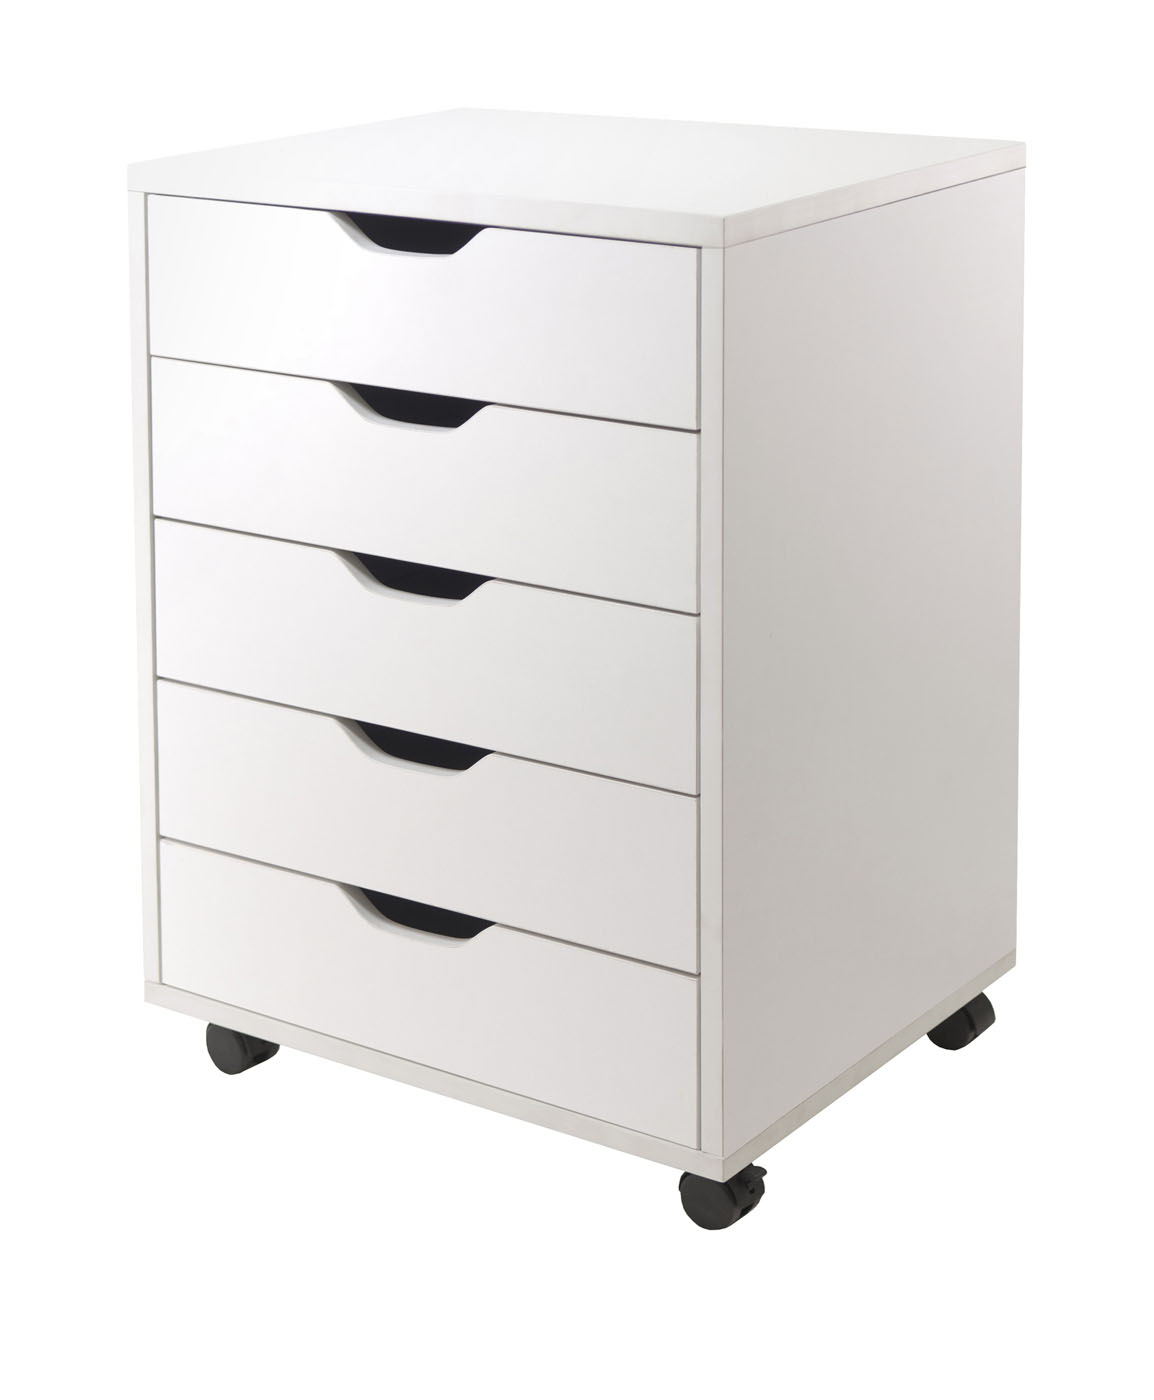 Amazing photo of  Wooden Storage Cabinet for Closet / Office 5 Drawers White eBay with #6E675D color and 1154x1400 pixels